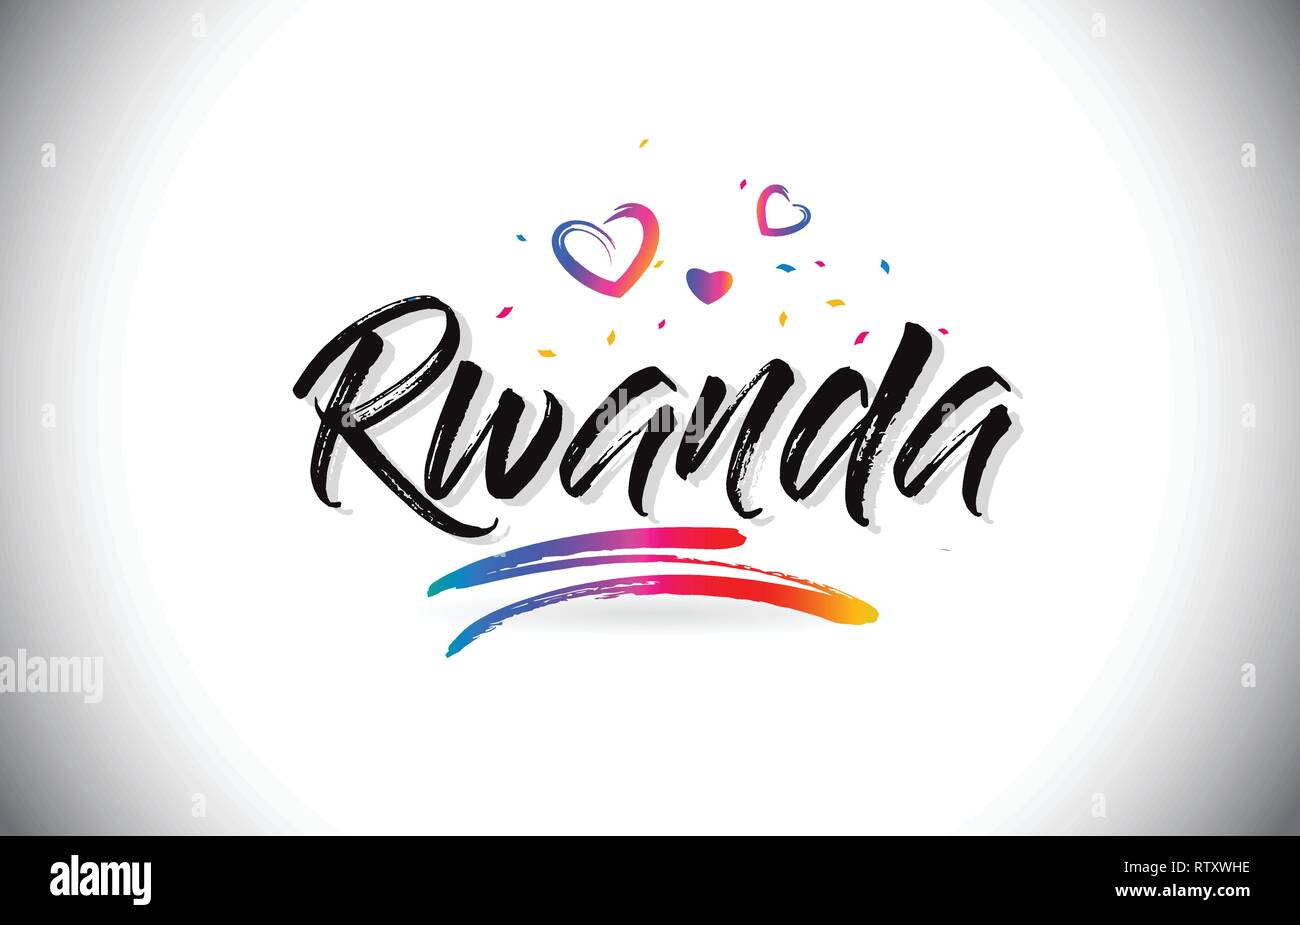 Rwanda Welcome To Word Text with Love Hearts and Creative Handwritten Font Design Vector Illustration. - Stock Vector